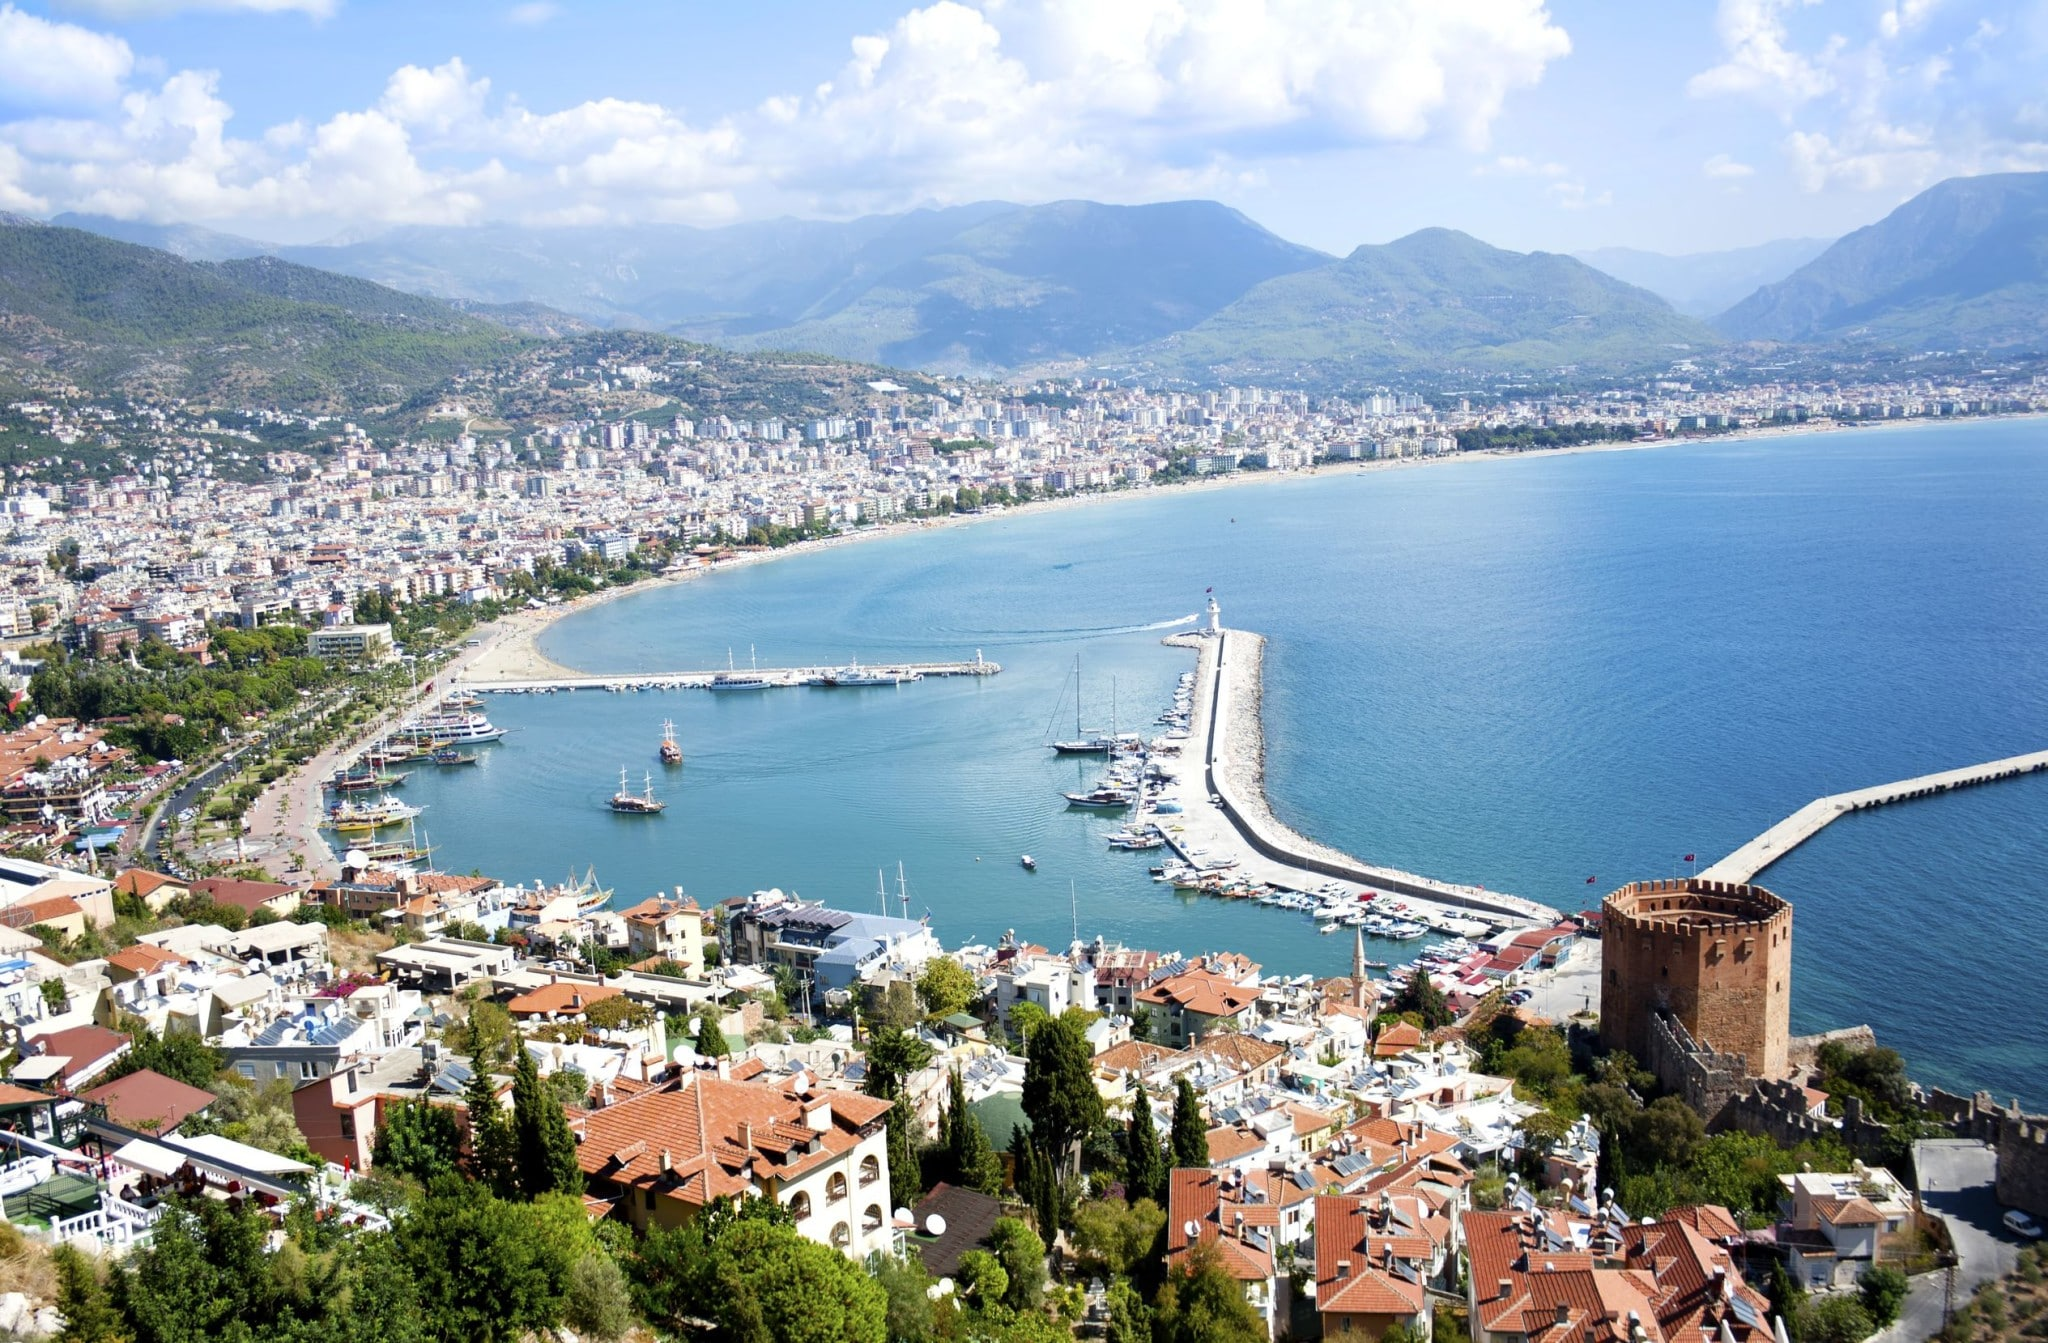 Aerial view of a coastal town in Turkey